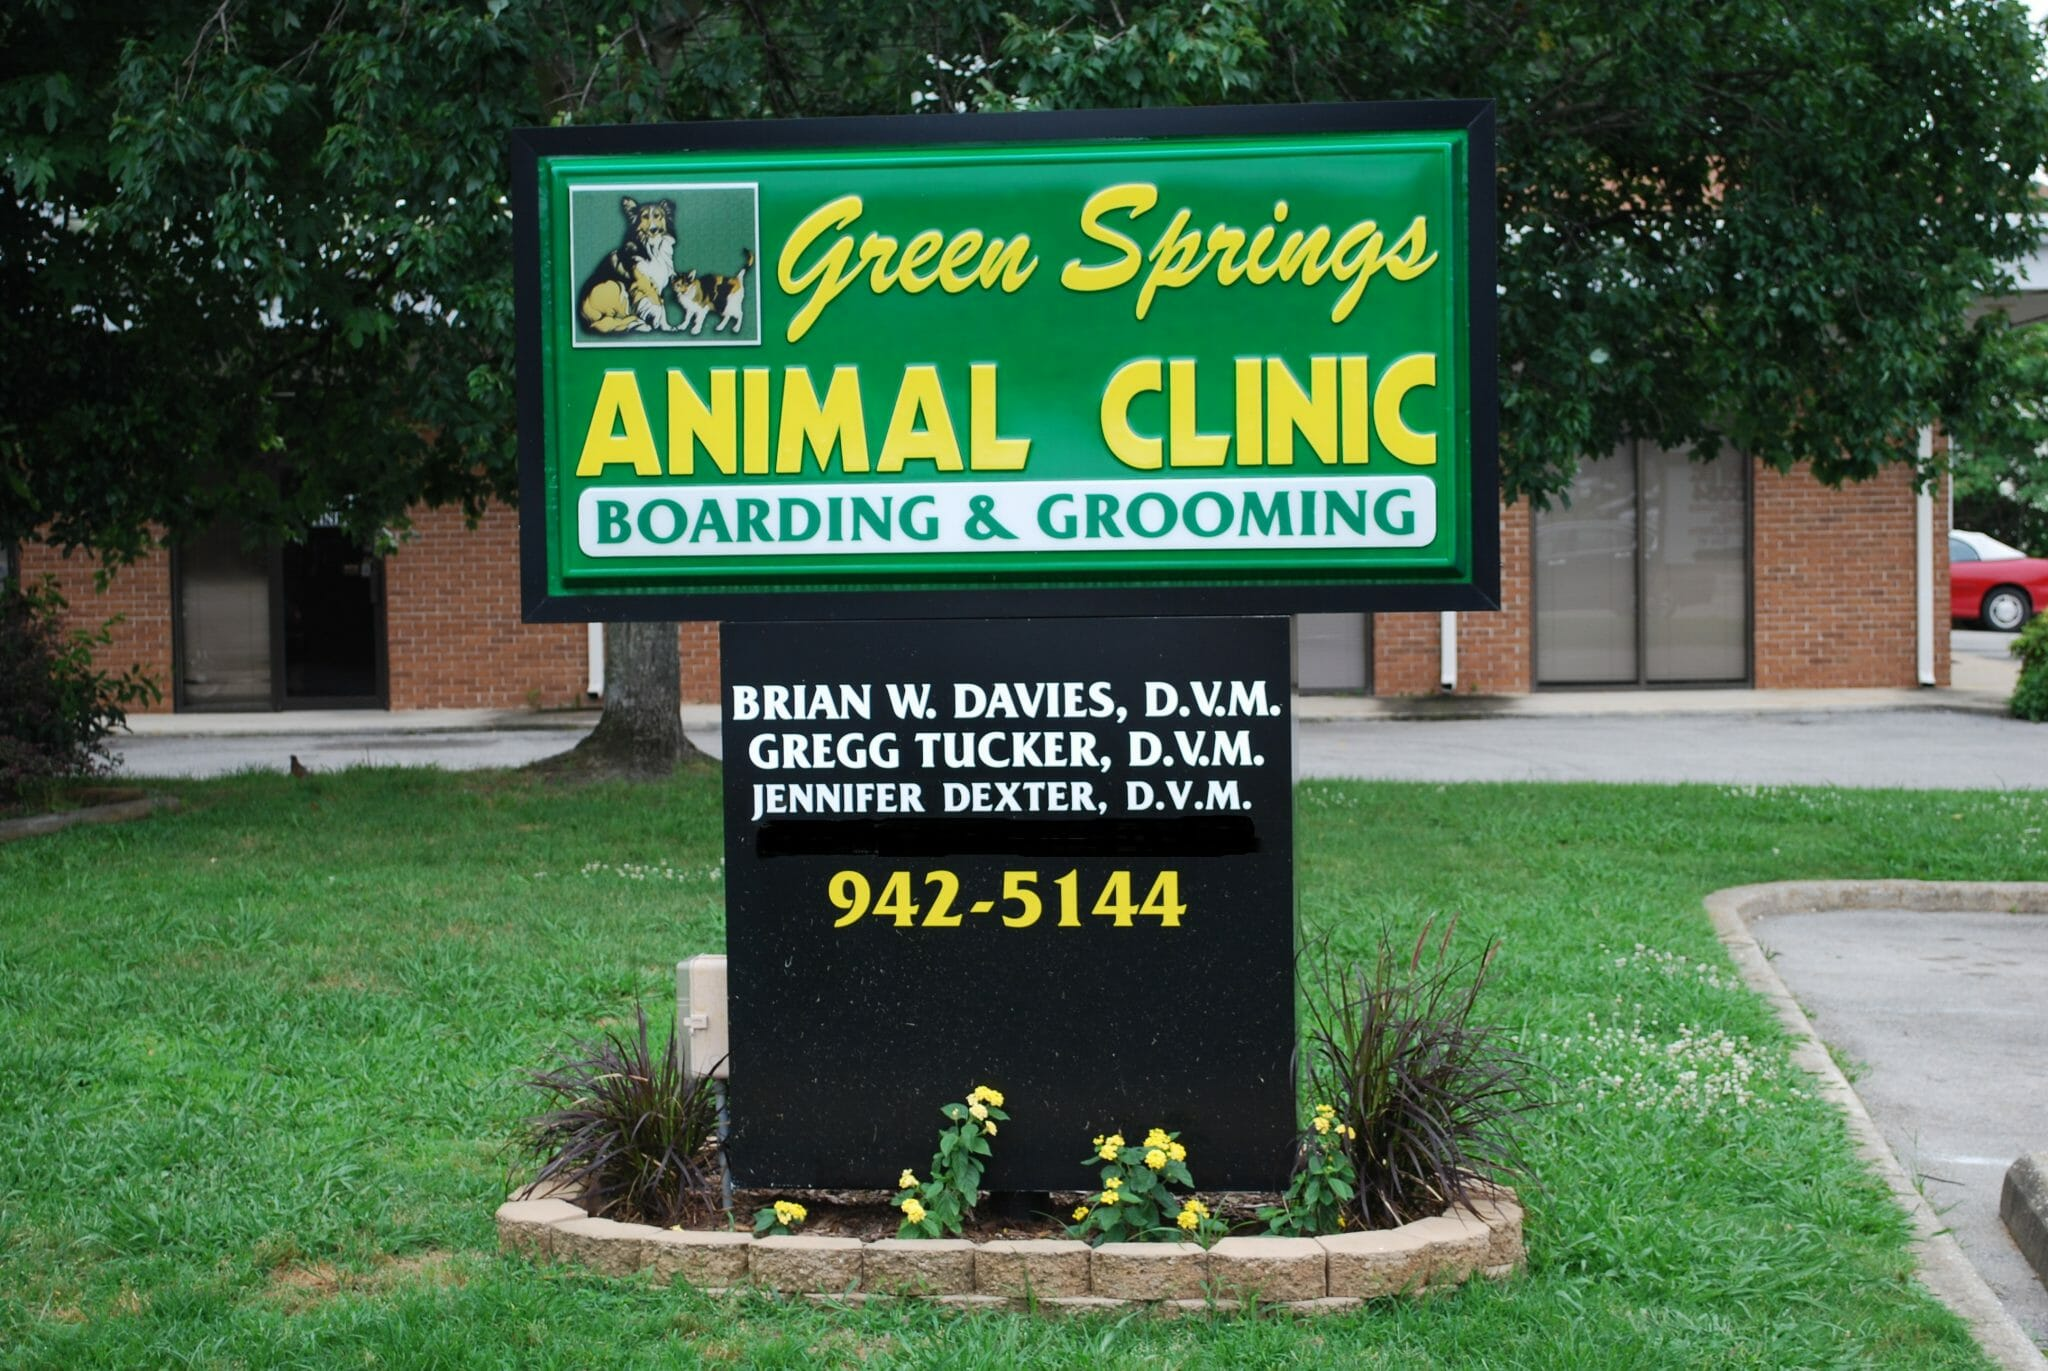 Green Springs Animal Clinic chooses Acuity DR